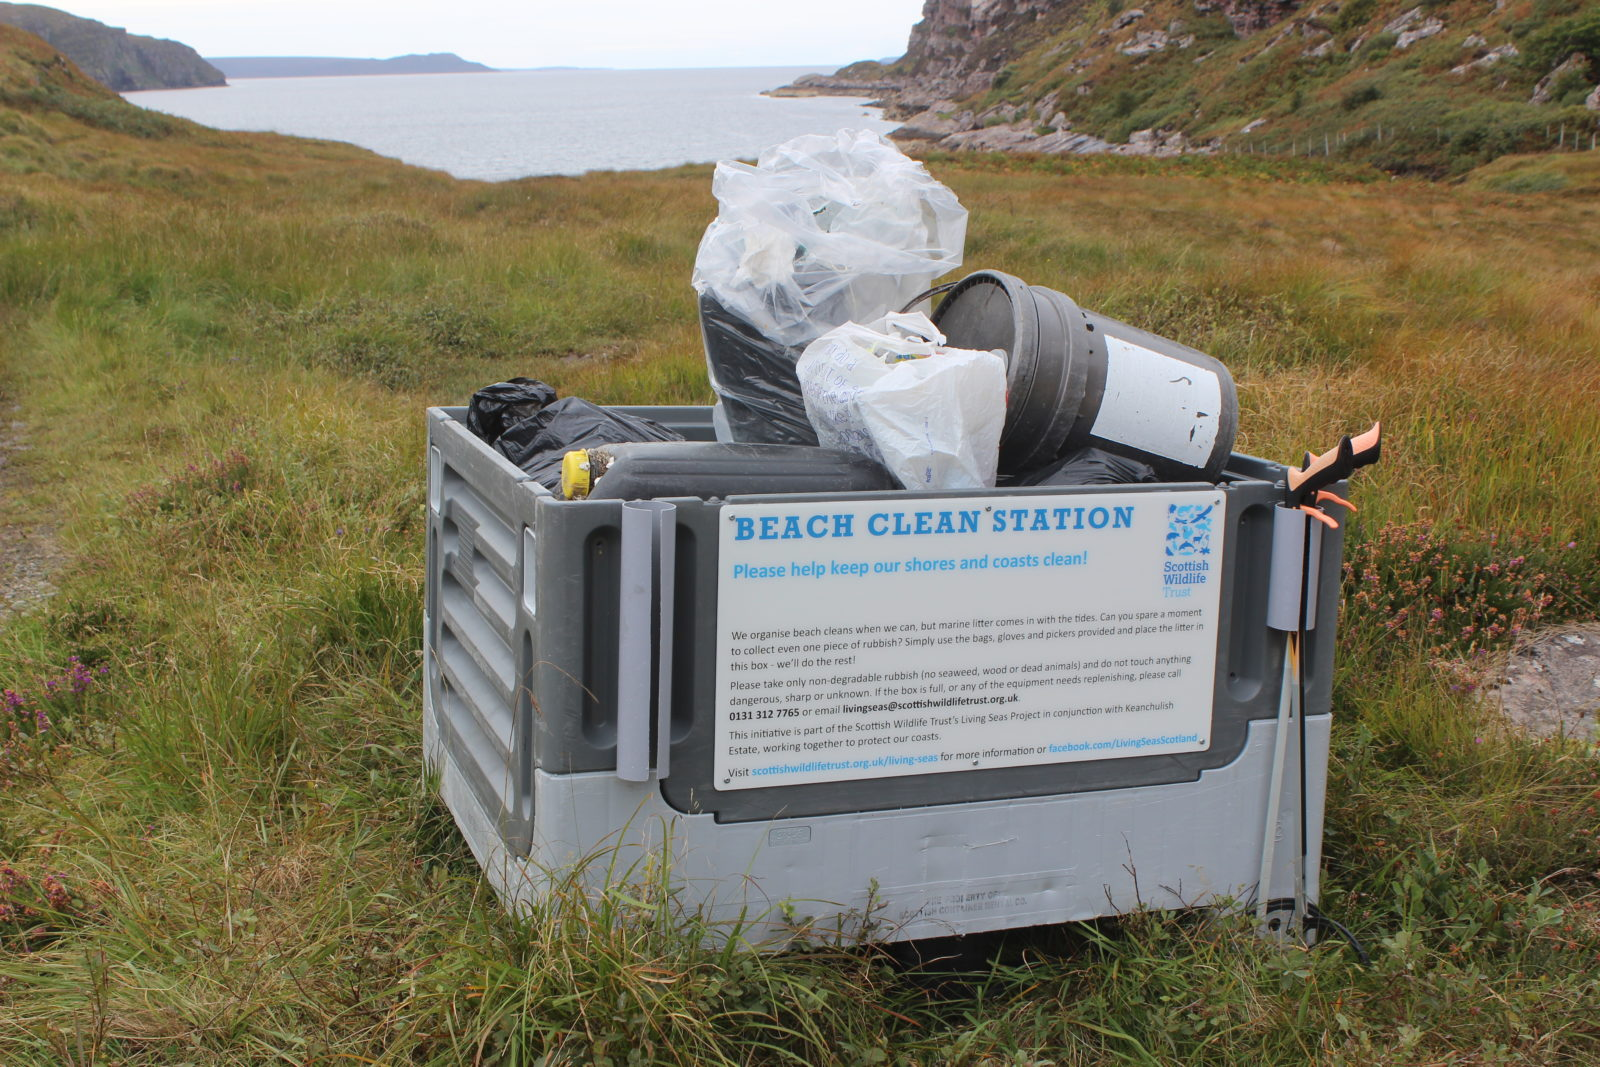 Beach clean station with collected rubbish